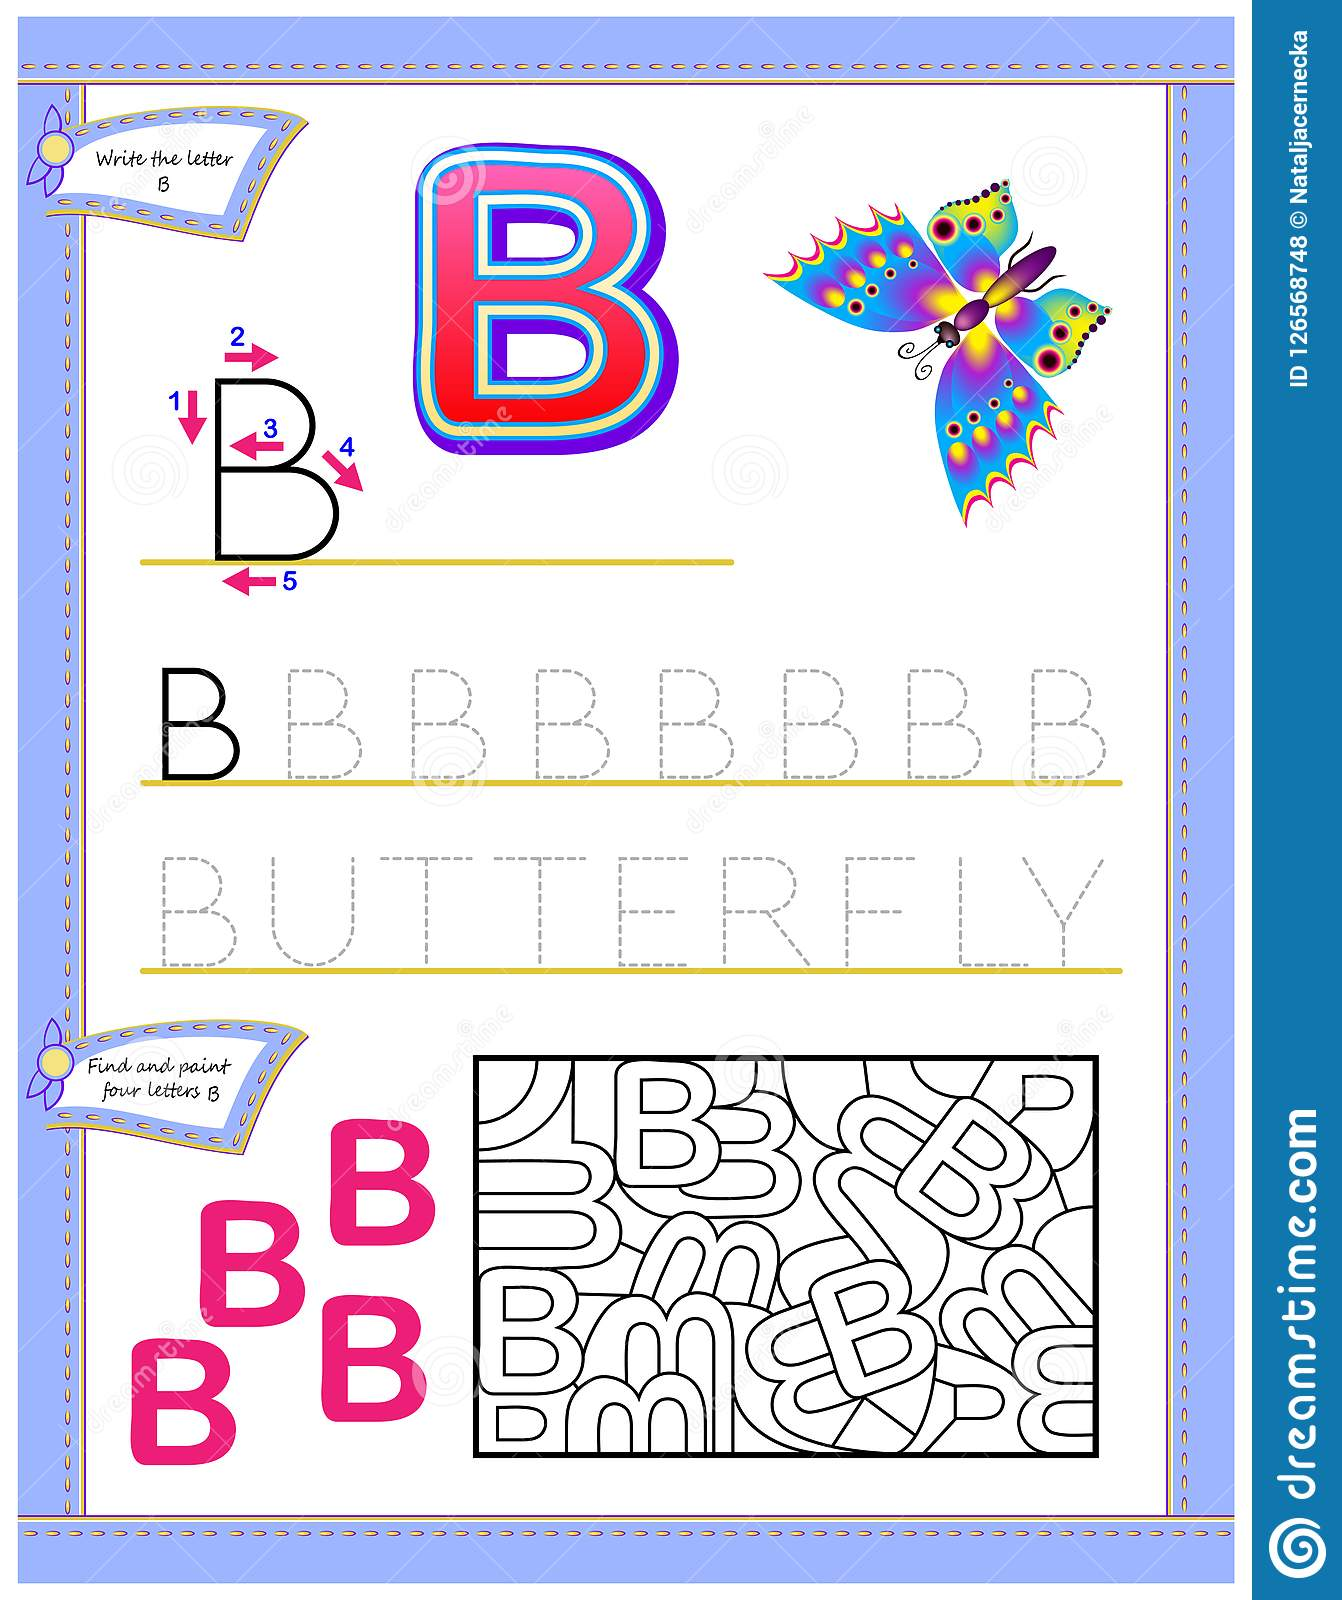 Worksheet For Kids With Letter B For Study English